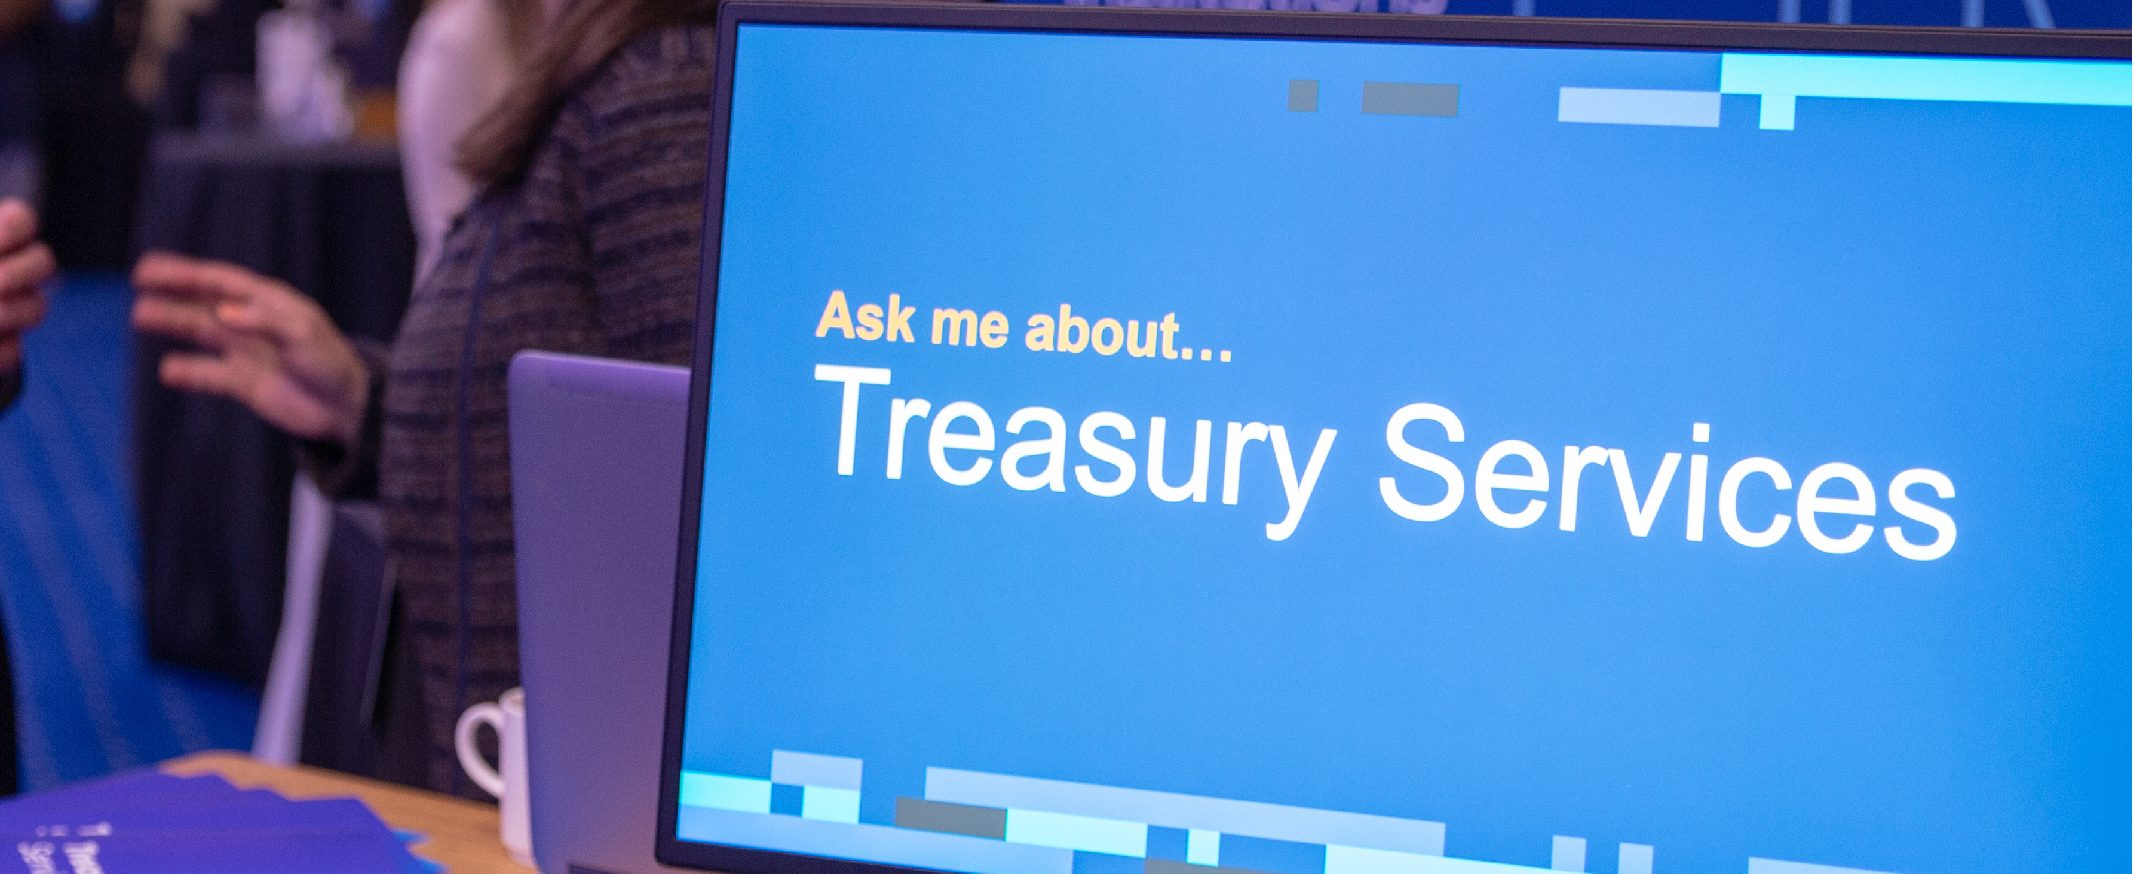 Ask me about Treasury Services